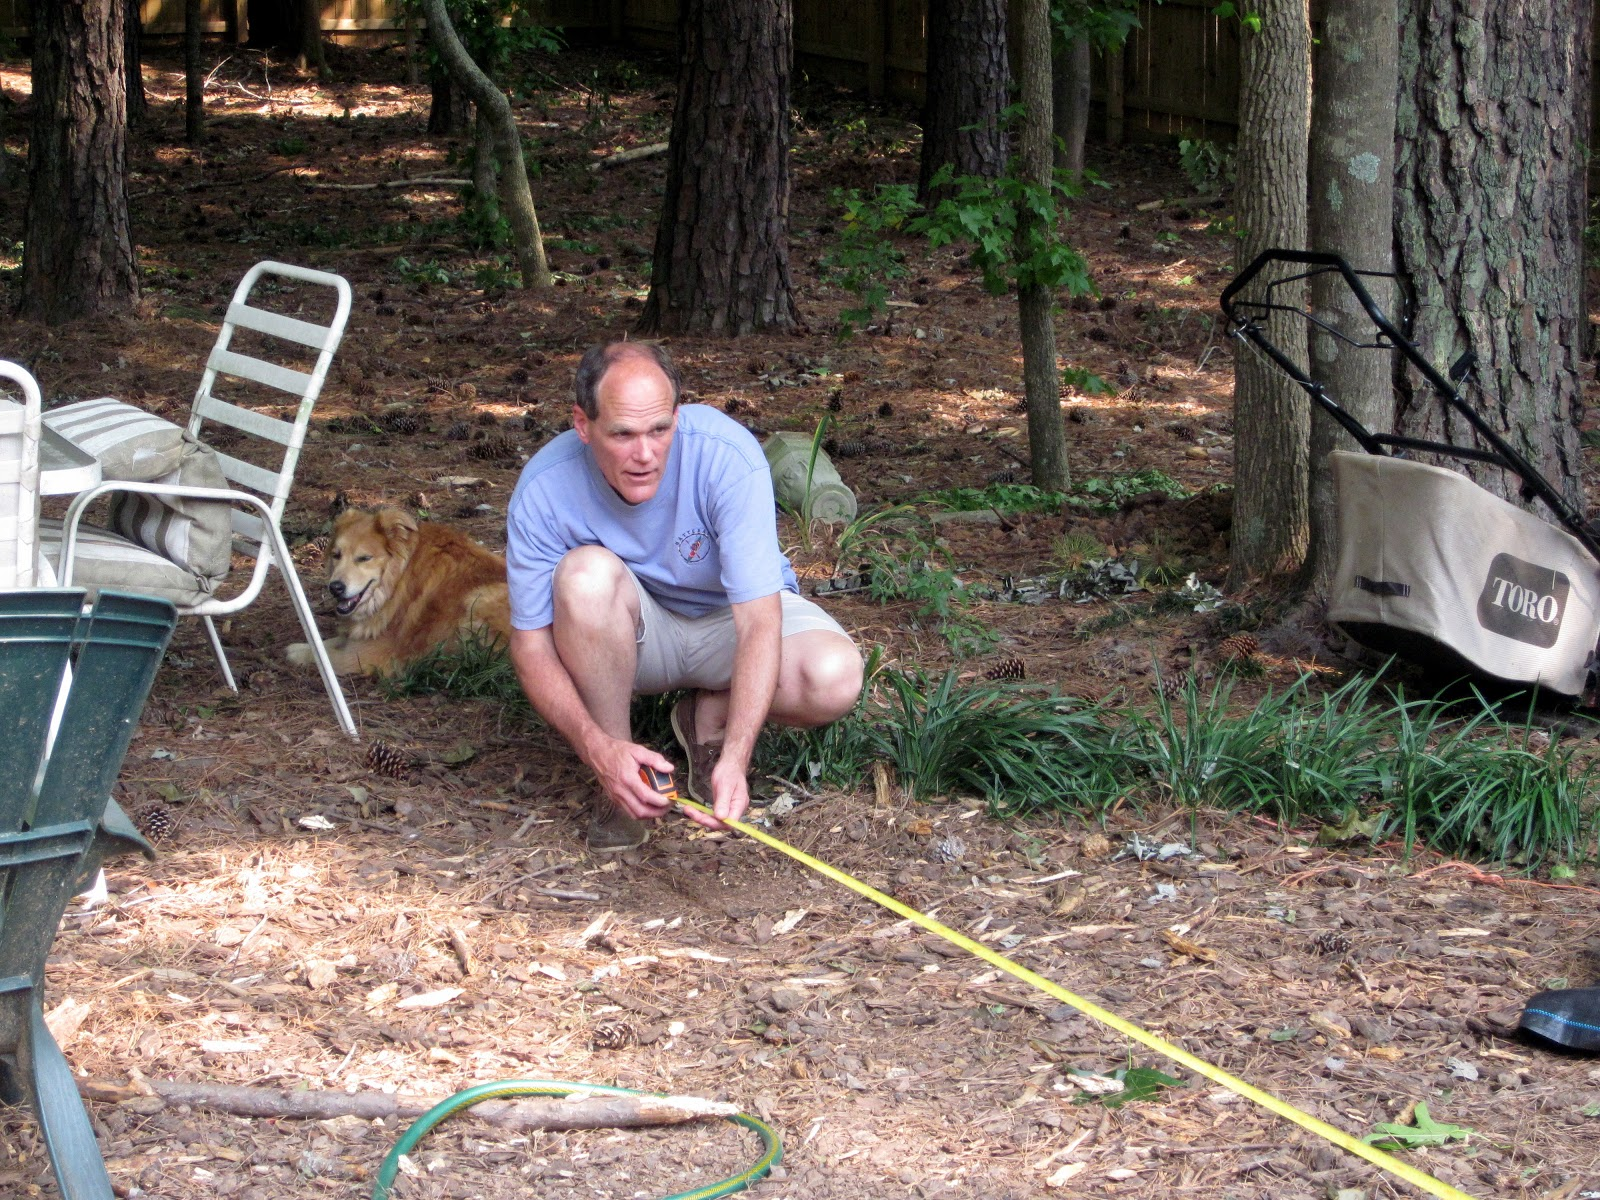 a peachtree city life: Checking Elevation with a Garden Hose ...